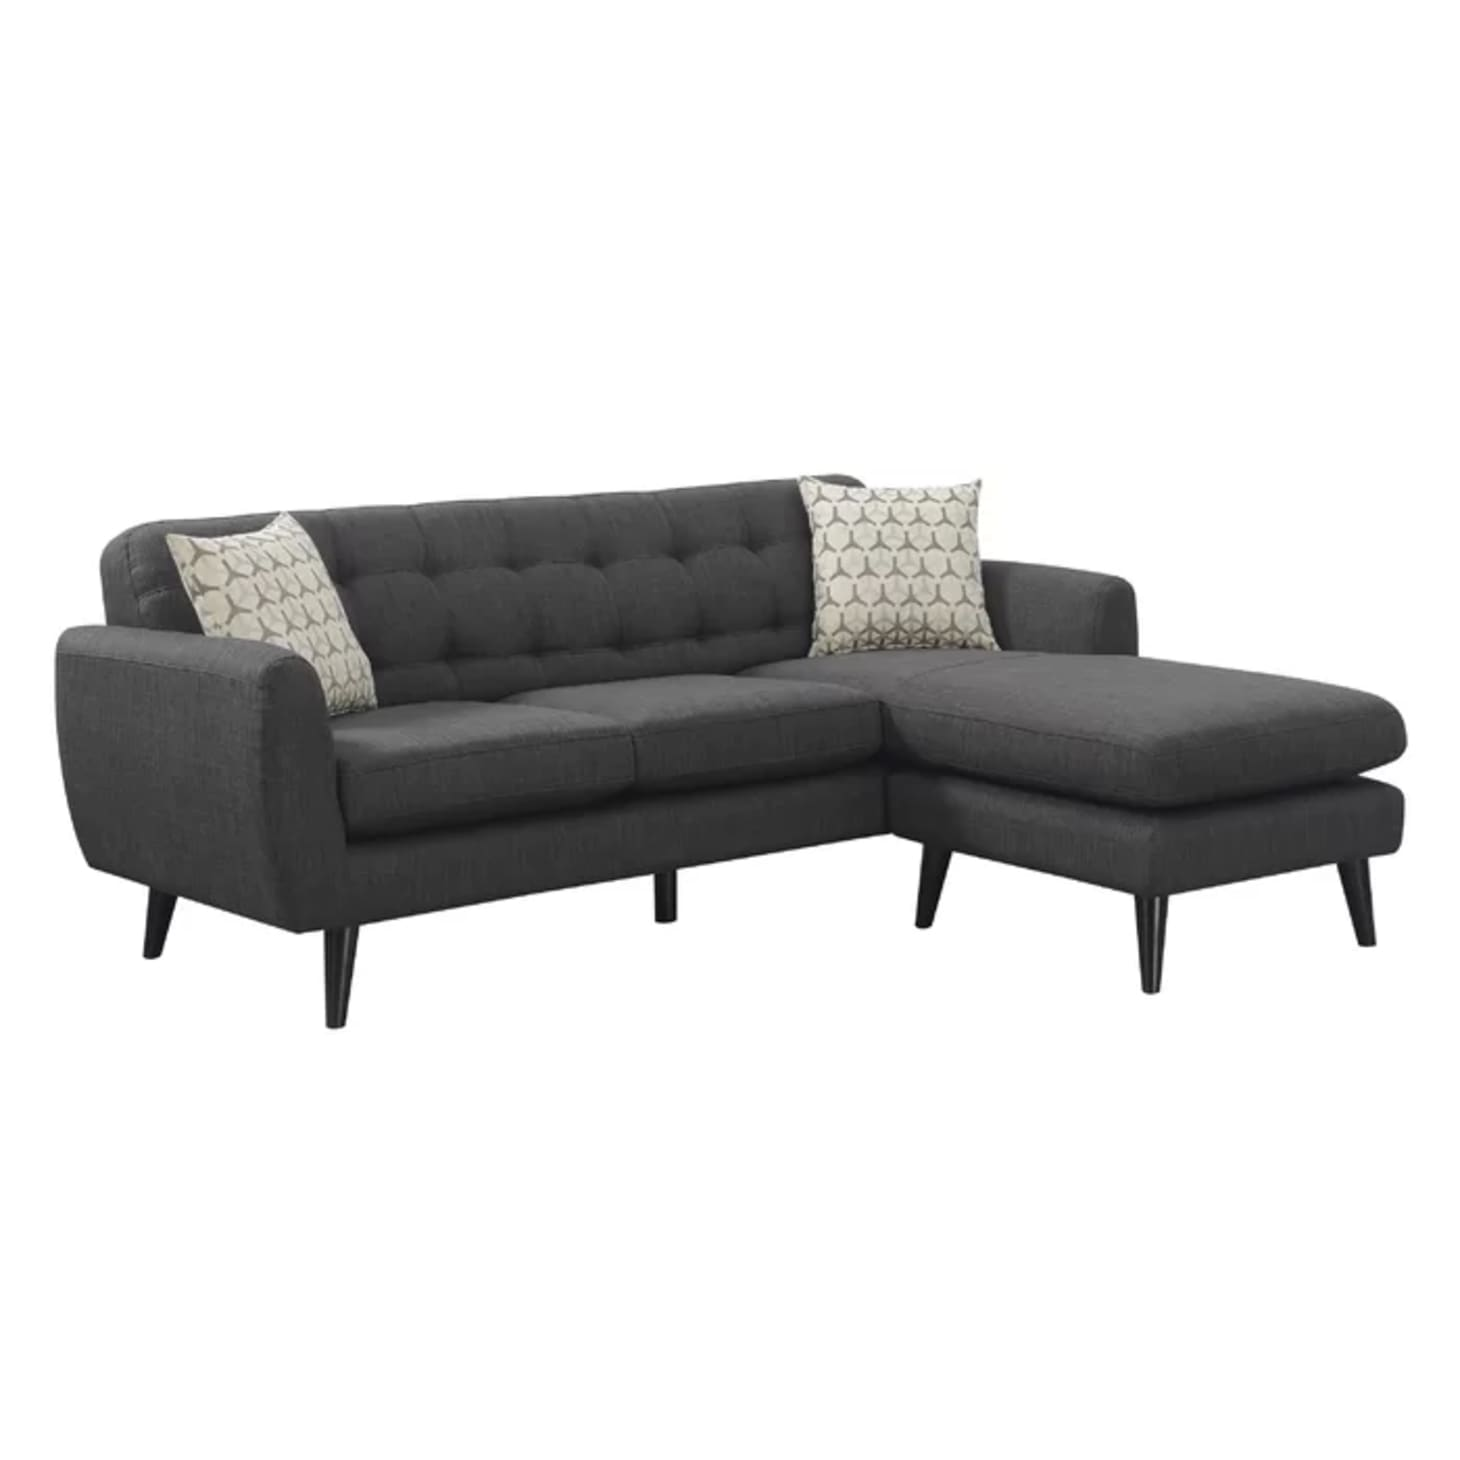 Groovy The Best Kid And Pet Friendly Sofas Sectionals Leather Home Remodeling Inspirations Gresiscottssportslandcom